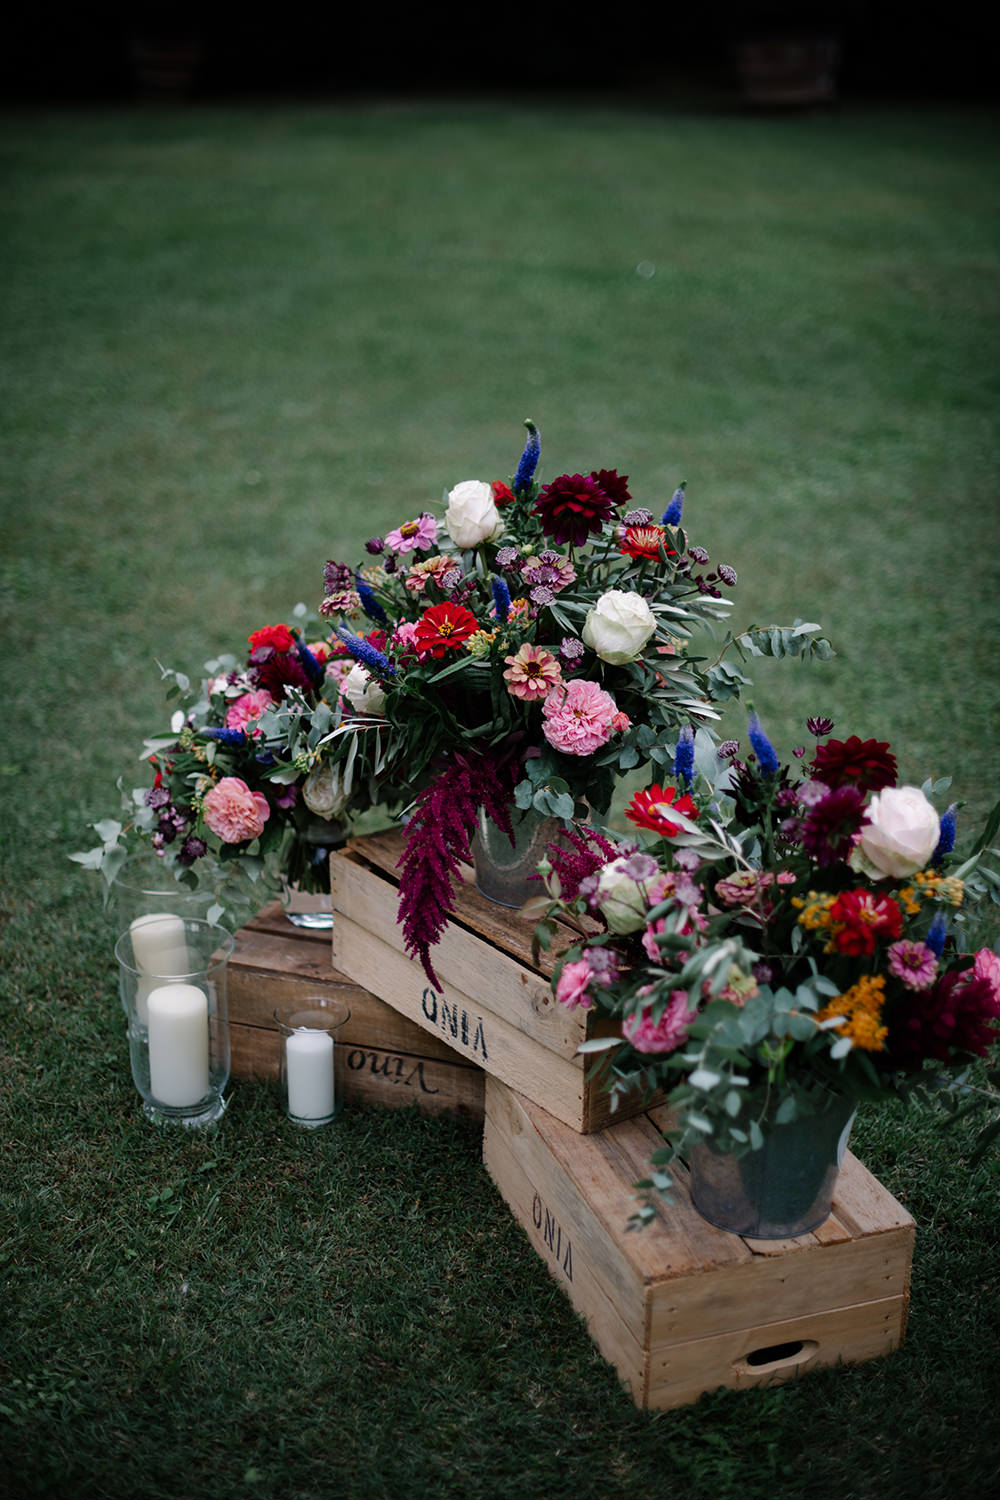 Flower Flowers Arrangement Candles Pink Roses Eucalyptus Dahlia Crates Wooden Tuscany Wedding Lelia Scarfiotti